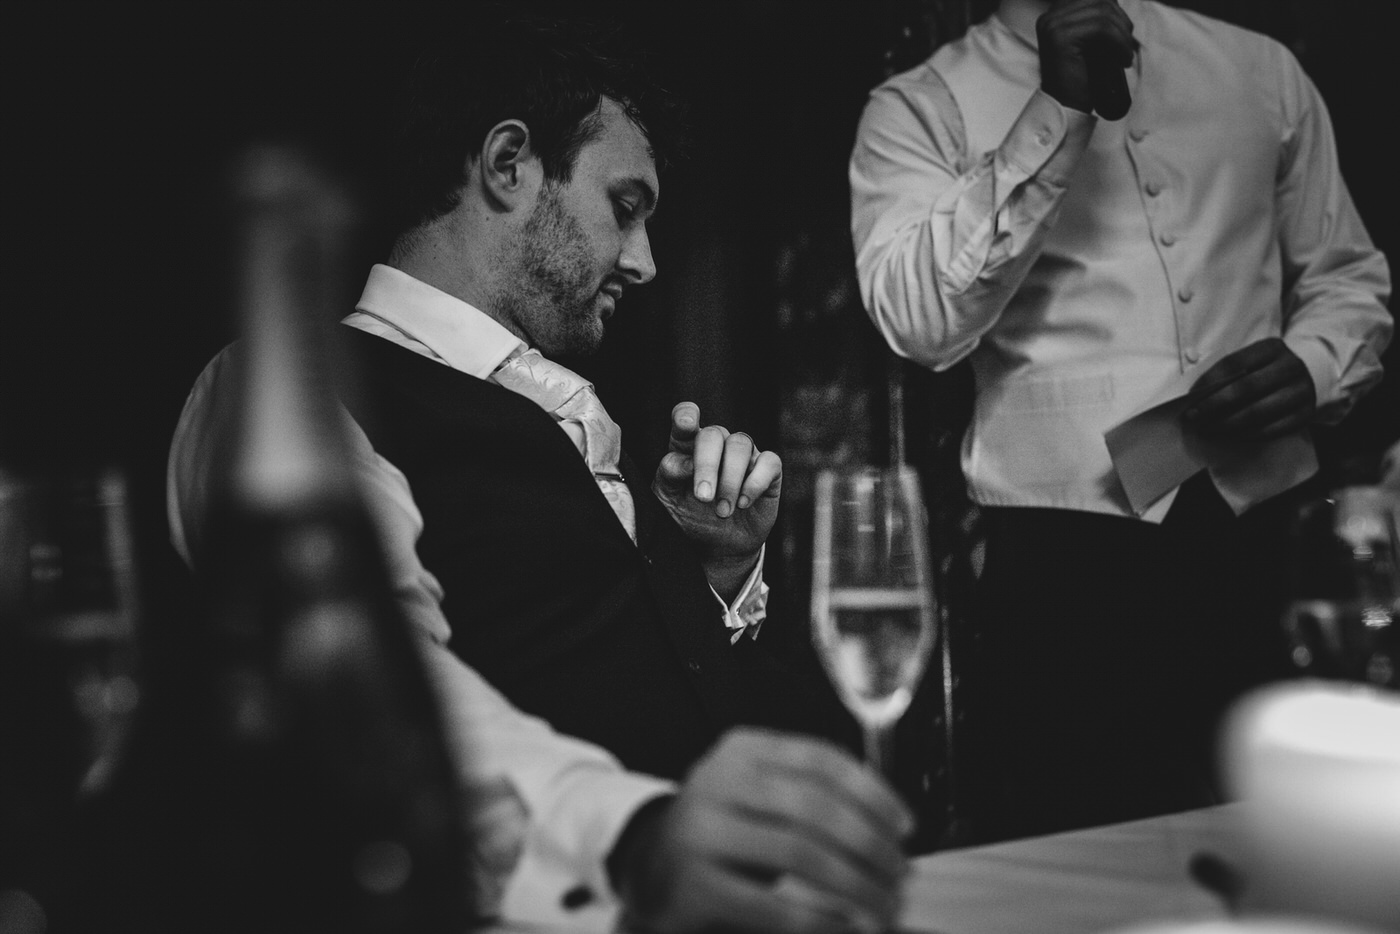 a moment of quiet reflection as the groom listens to his best man's speech